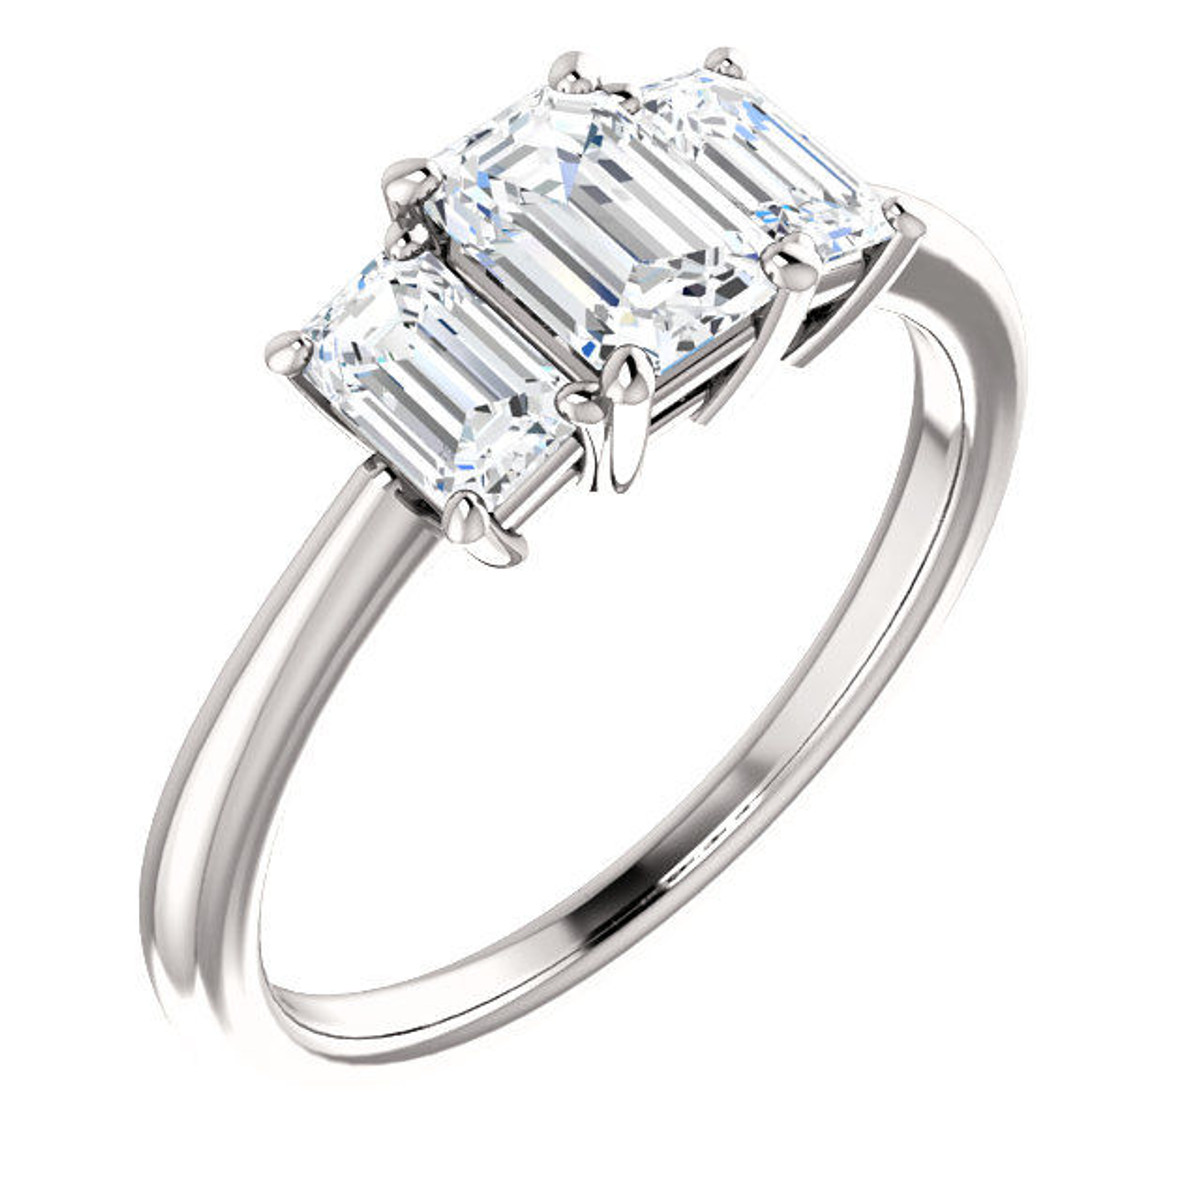 White Gold 3-Stone Emerald Cut Engagement Ring